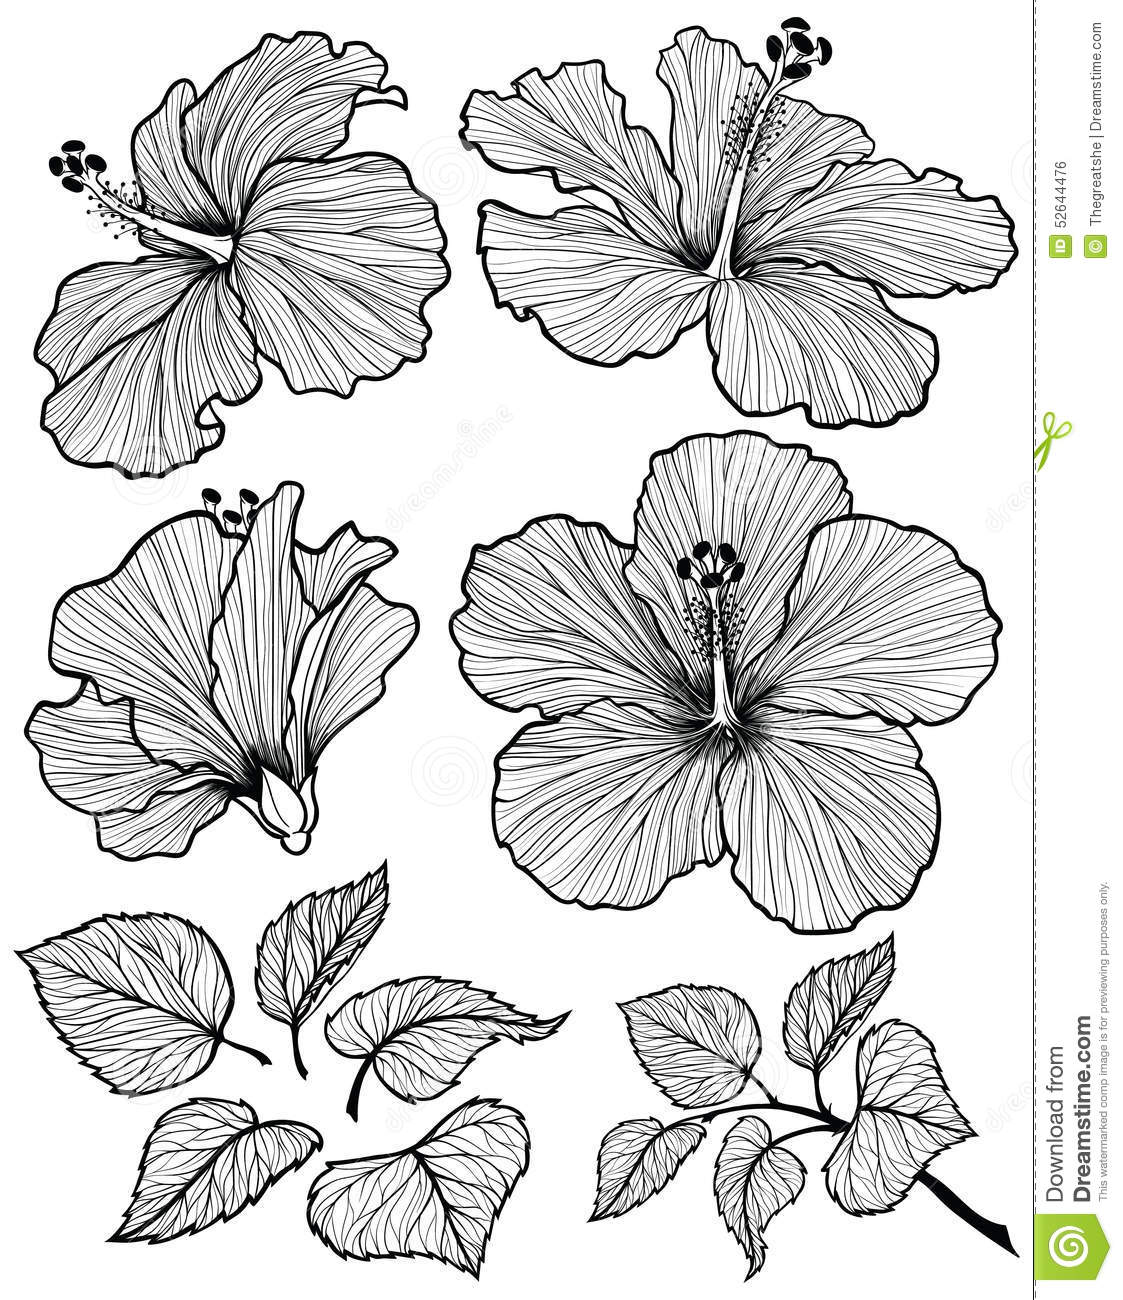 Drawn leaves vintage Set flower  with with